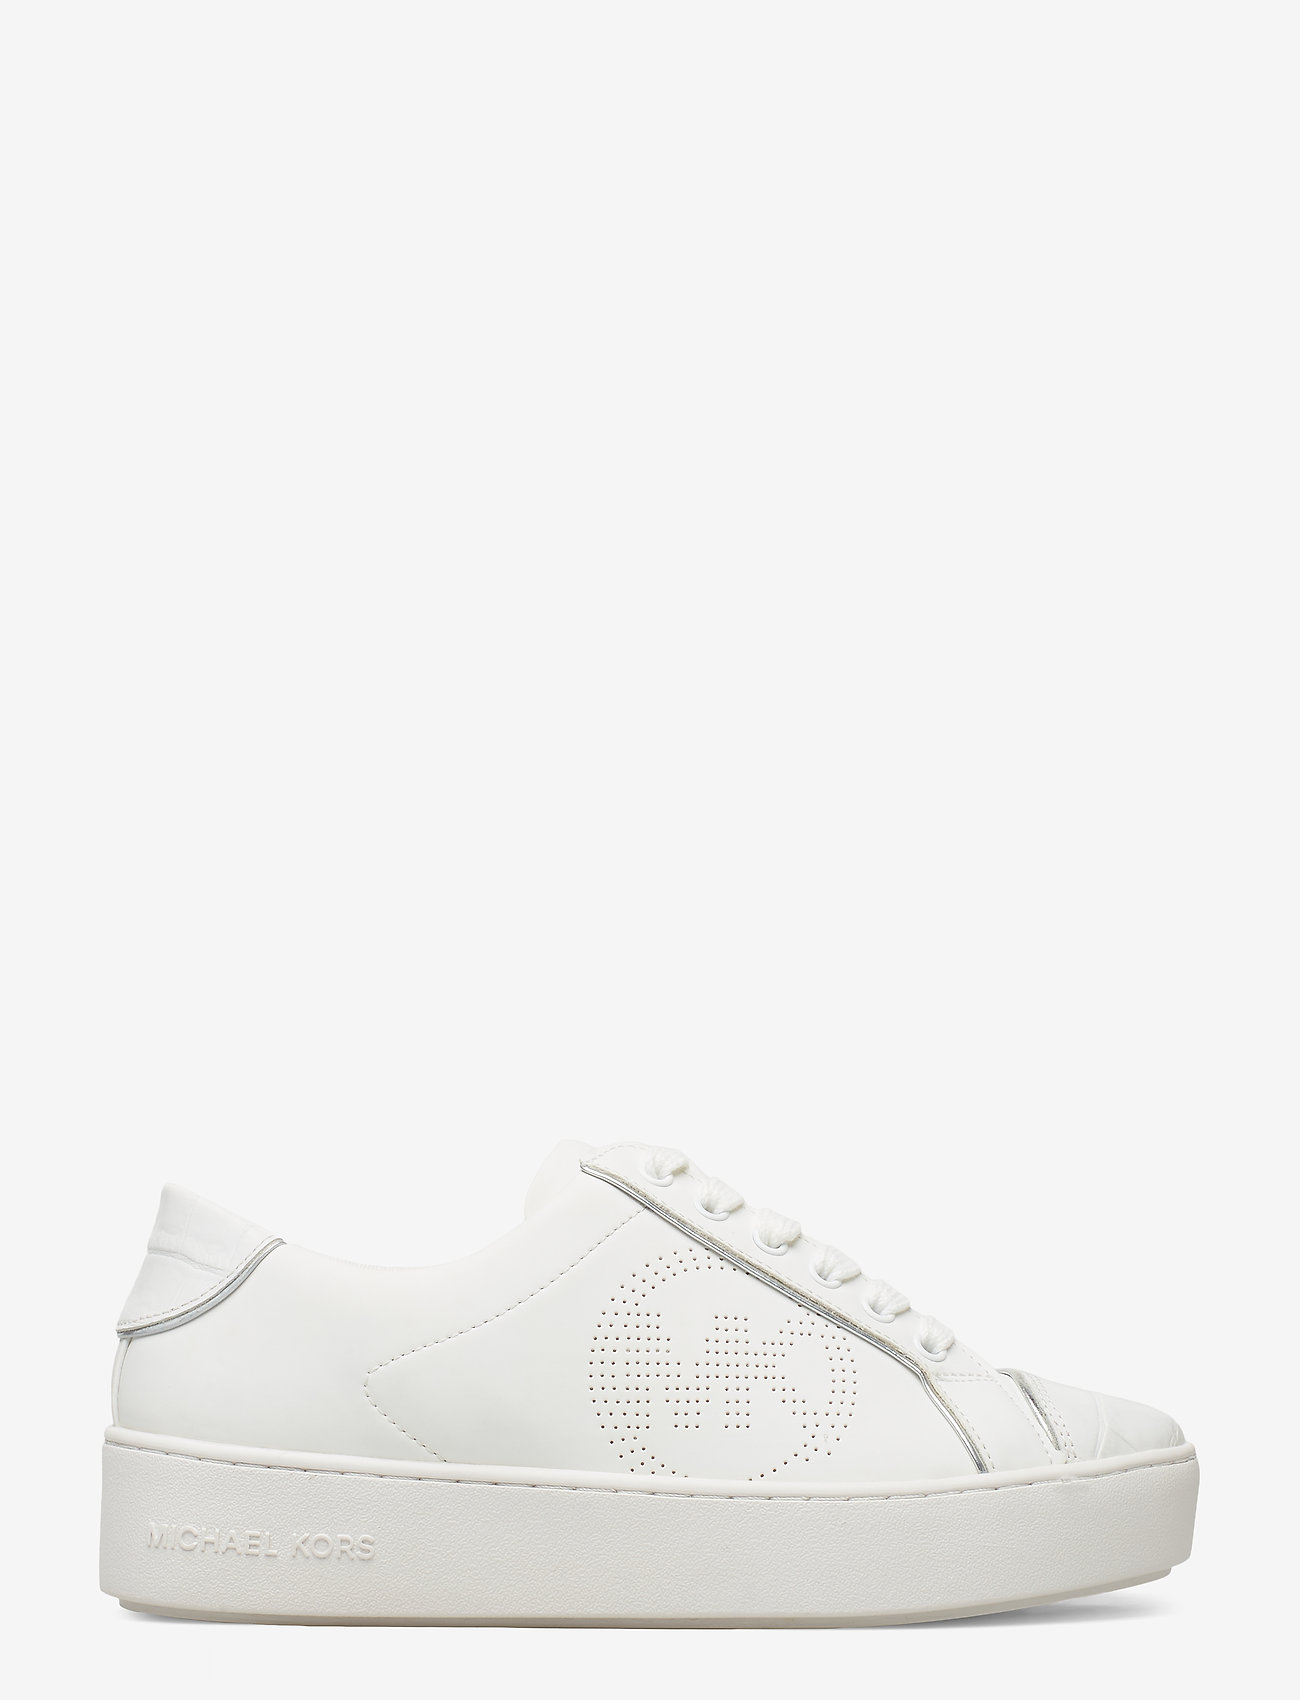 Kirby Lace Up (Opt/silver) (123.75 €) - Michael Kors Shoes VcpaU